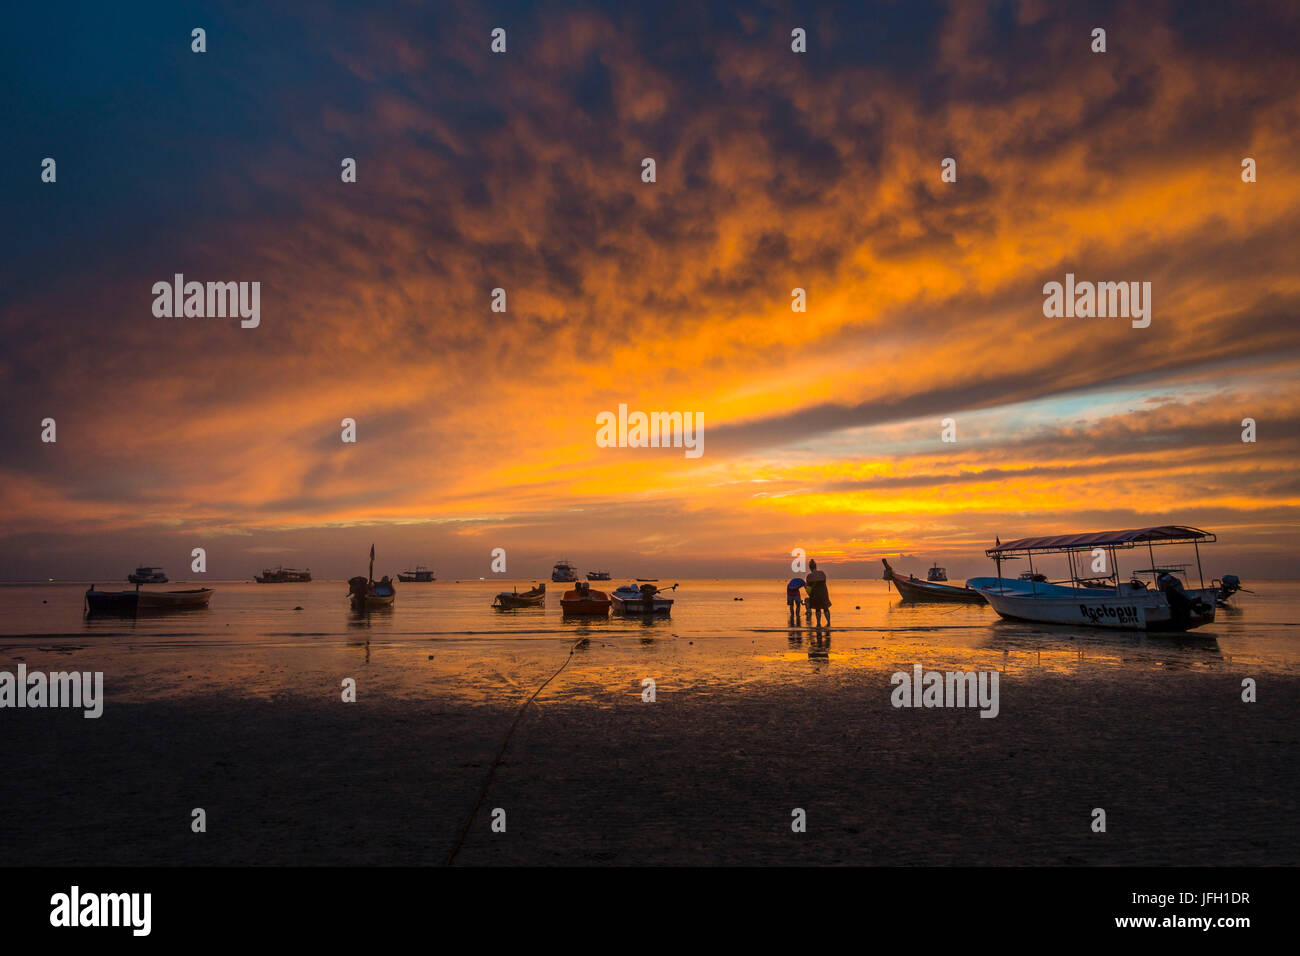 Family with small child on the beach in the water, boats in the sea at sundown, island Koh Tao, golf of Thailand, - Stock Image